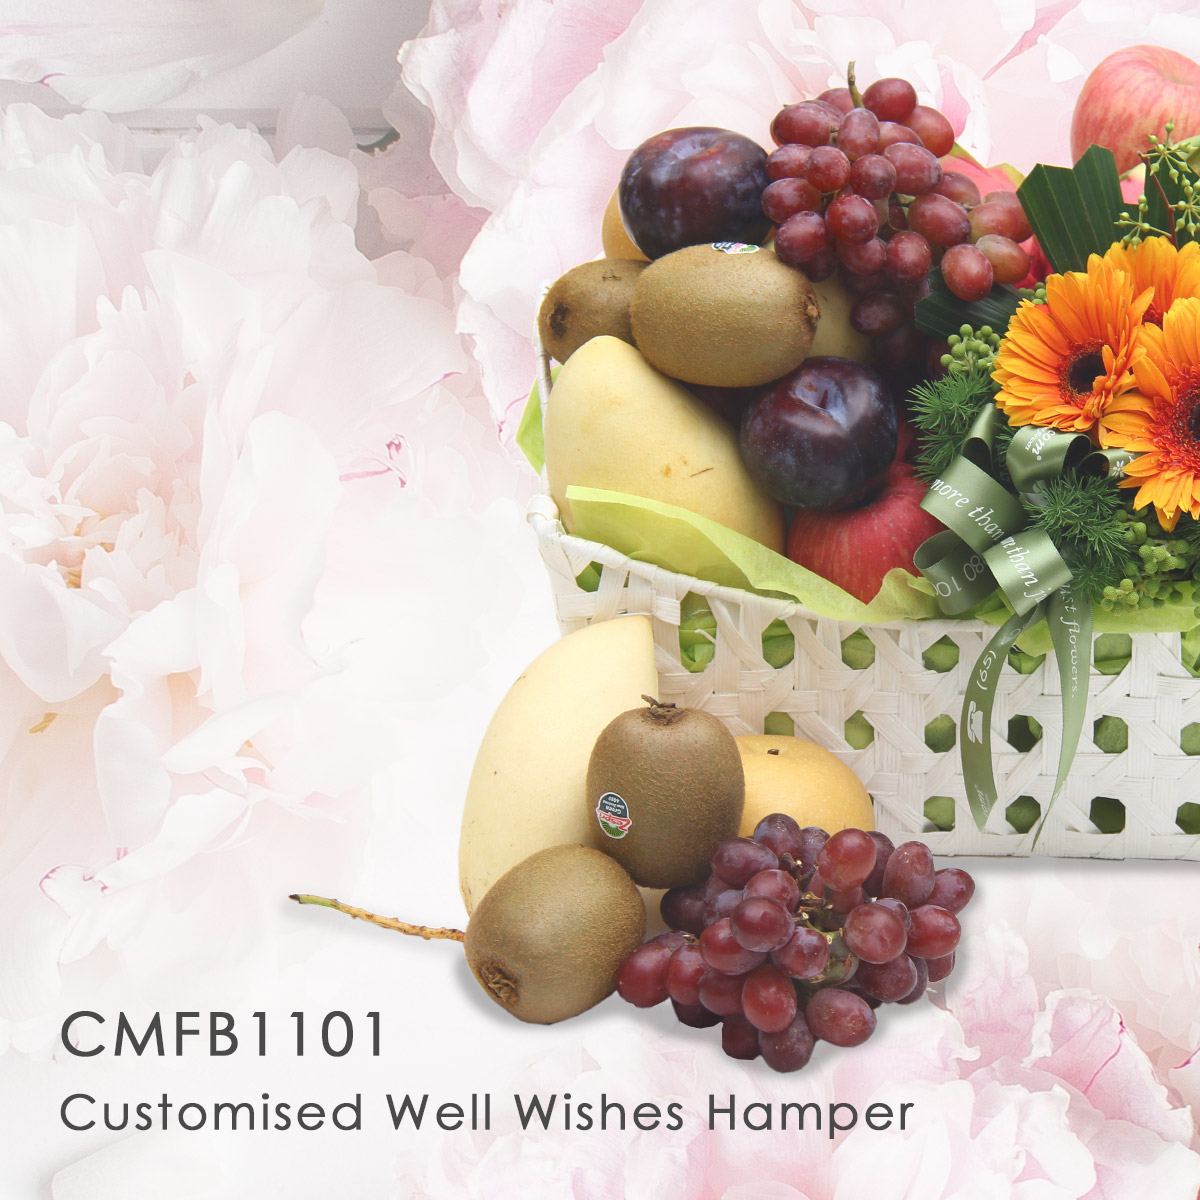 Customised Wellness Hamper